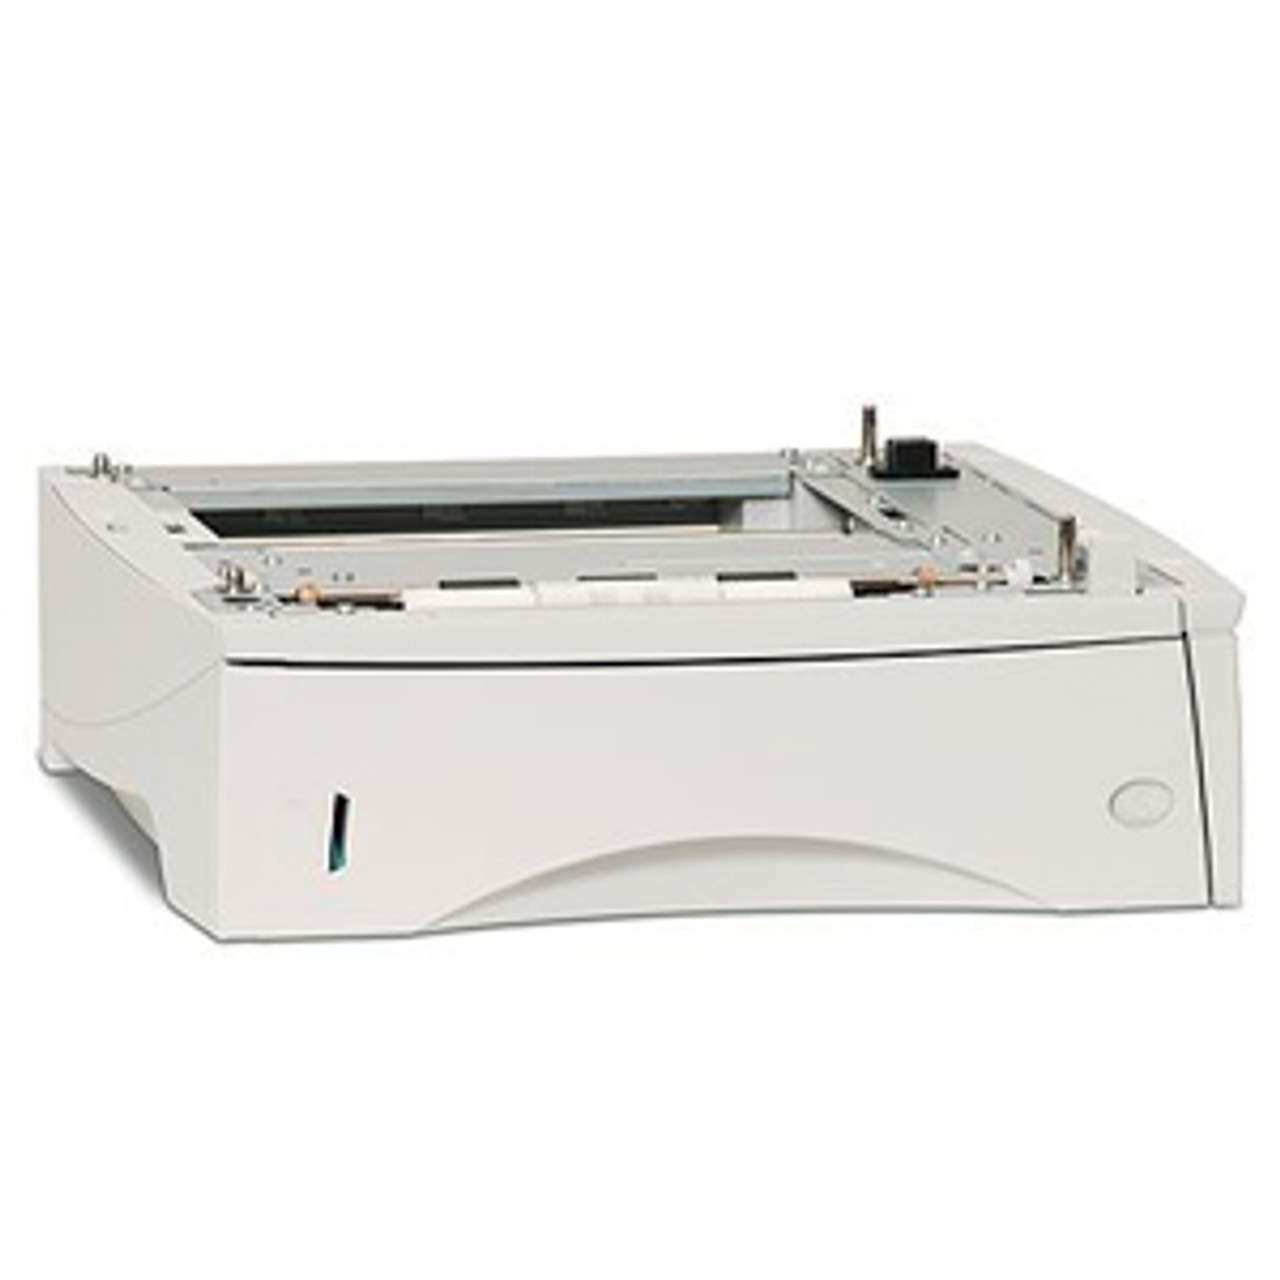 HP Media tray - 4250 4350 series 500 sheets